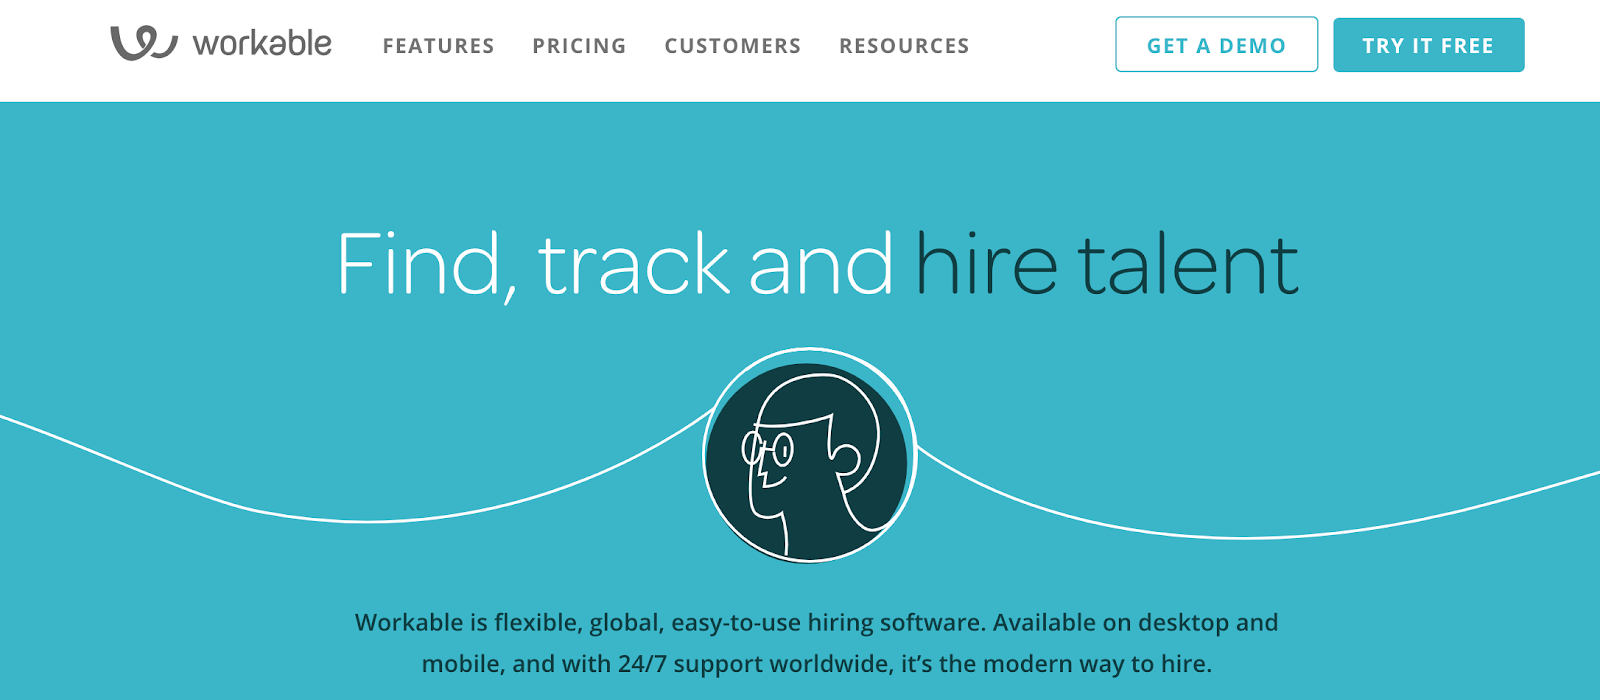 Small Business Software - Workable